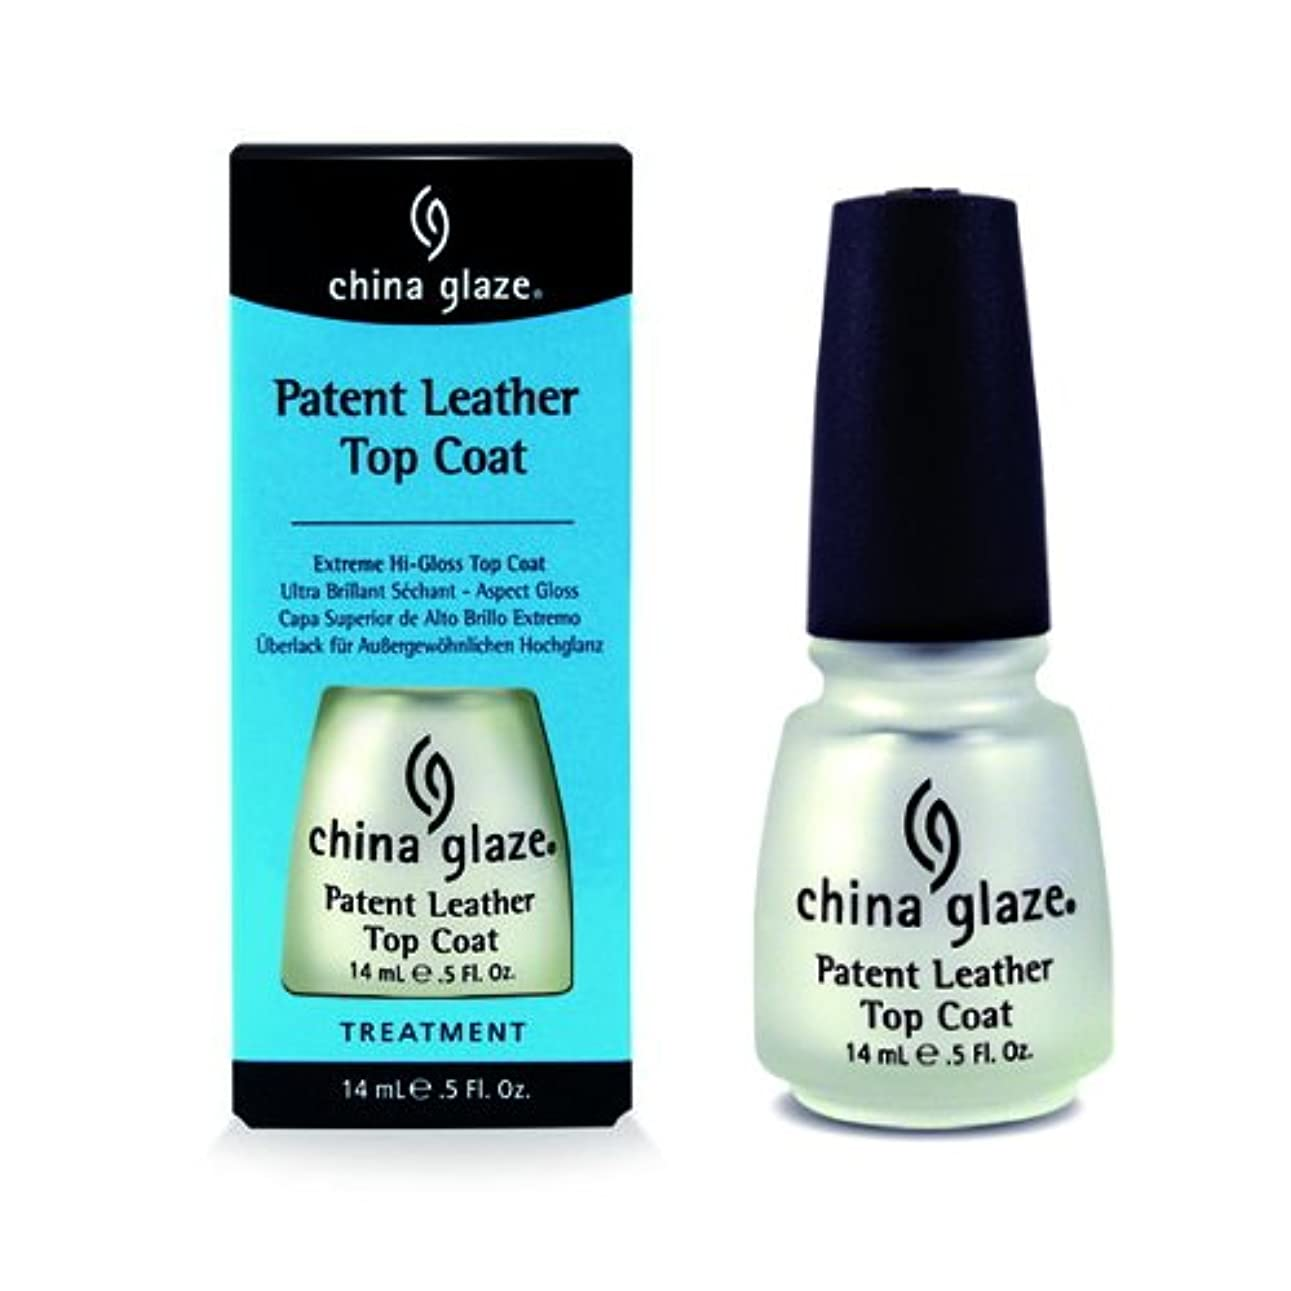 スティーブンソン泳ぐ深い(3 Pack) CHINA GLAZE Patent Leather Top Coat (Extreme Shine) - CGT915 (並行輸入品)